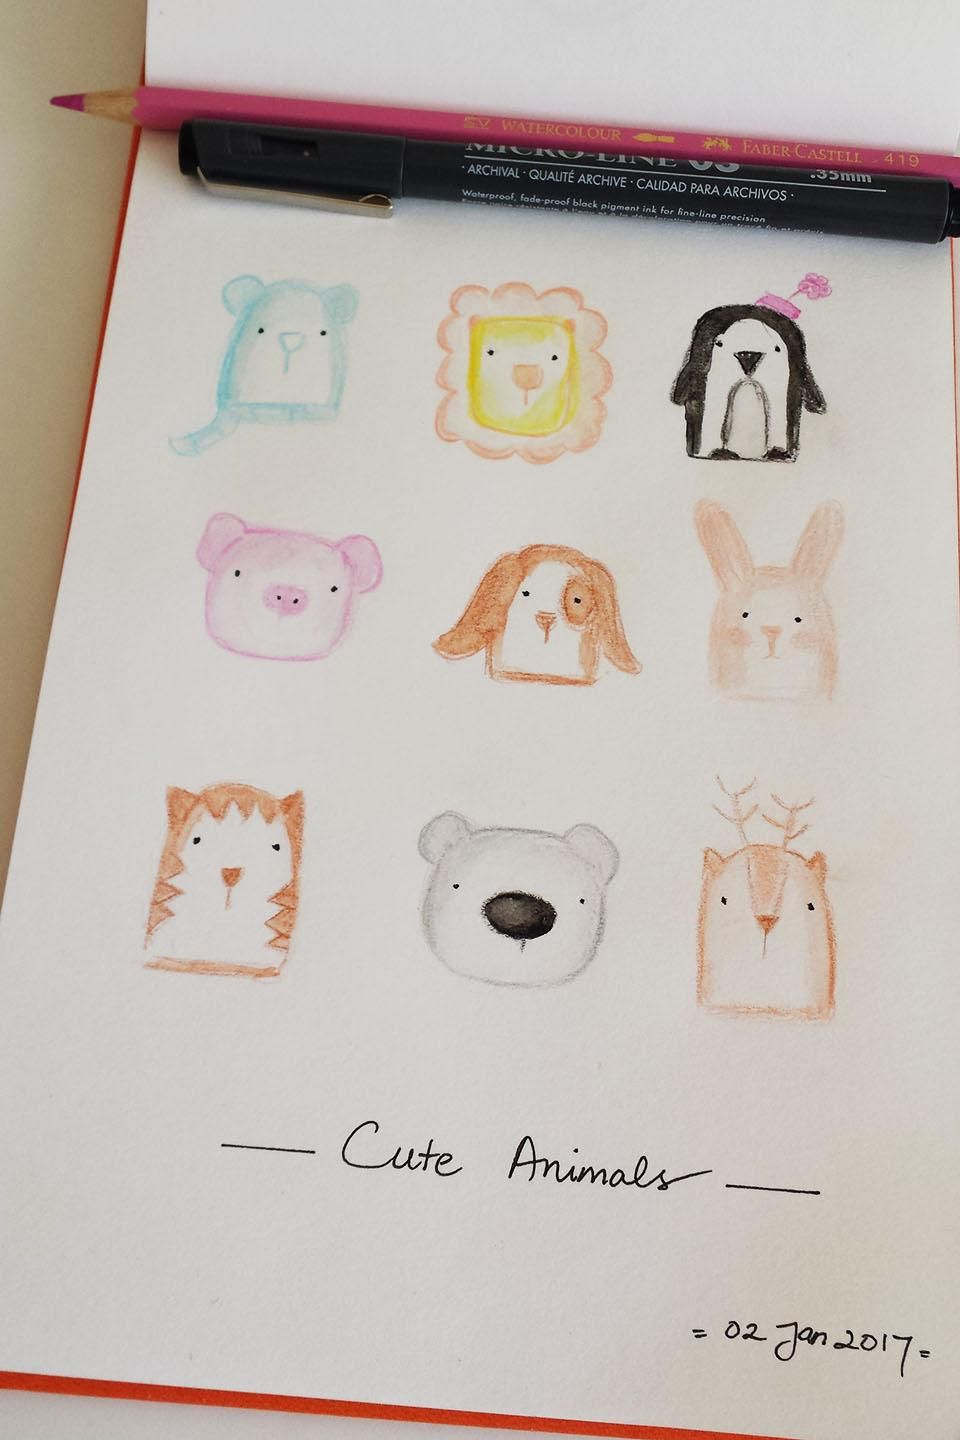 Yes to draw cute! - image 2 - student project